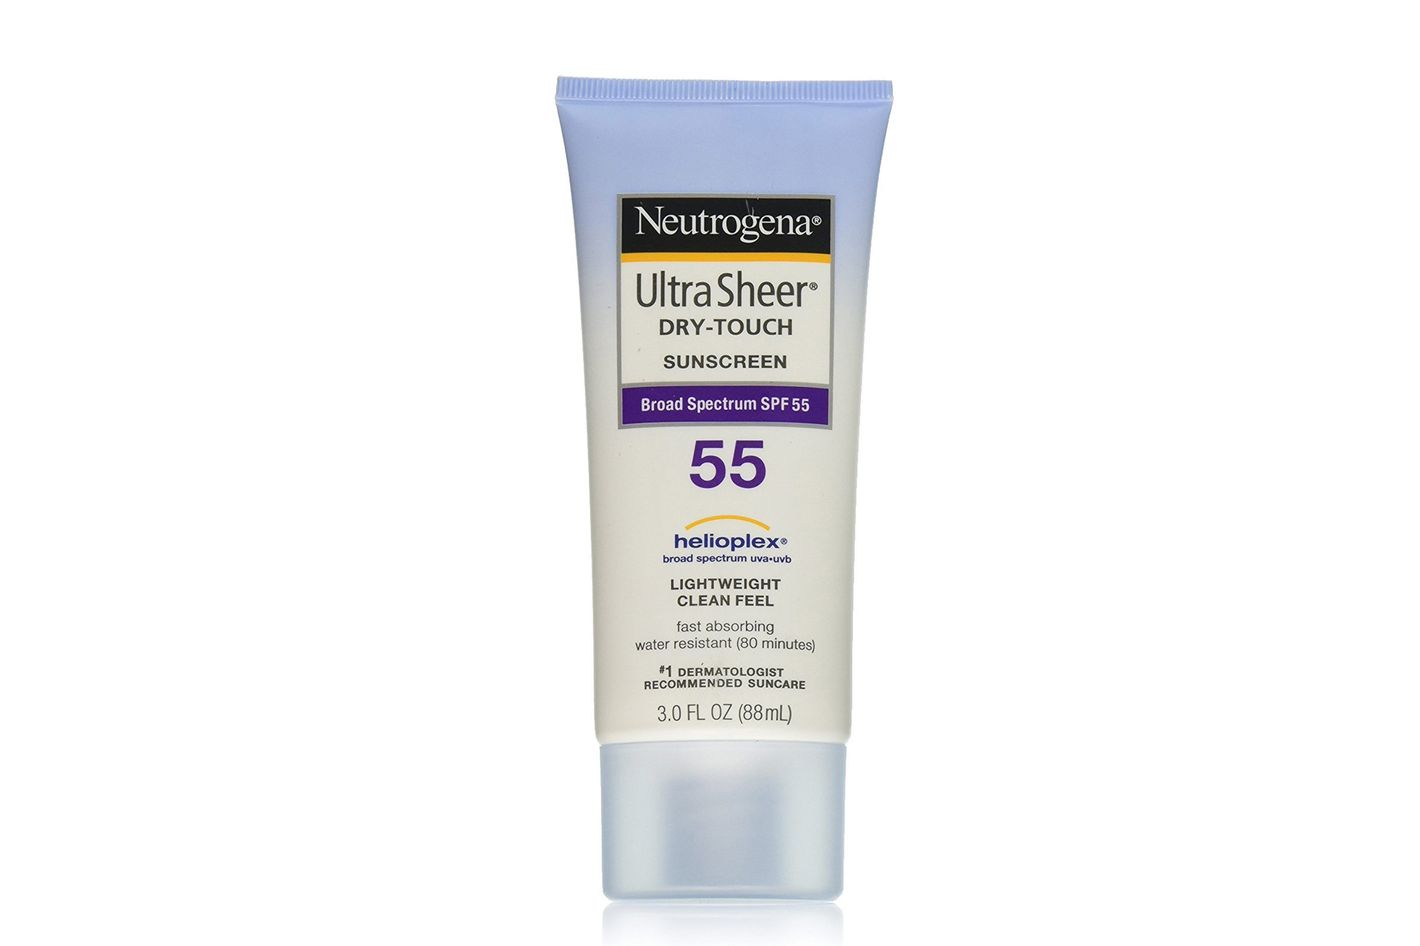 Neutrogena Ultra Dry-Touch Sunscreen SPF 55